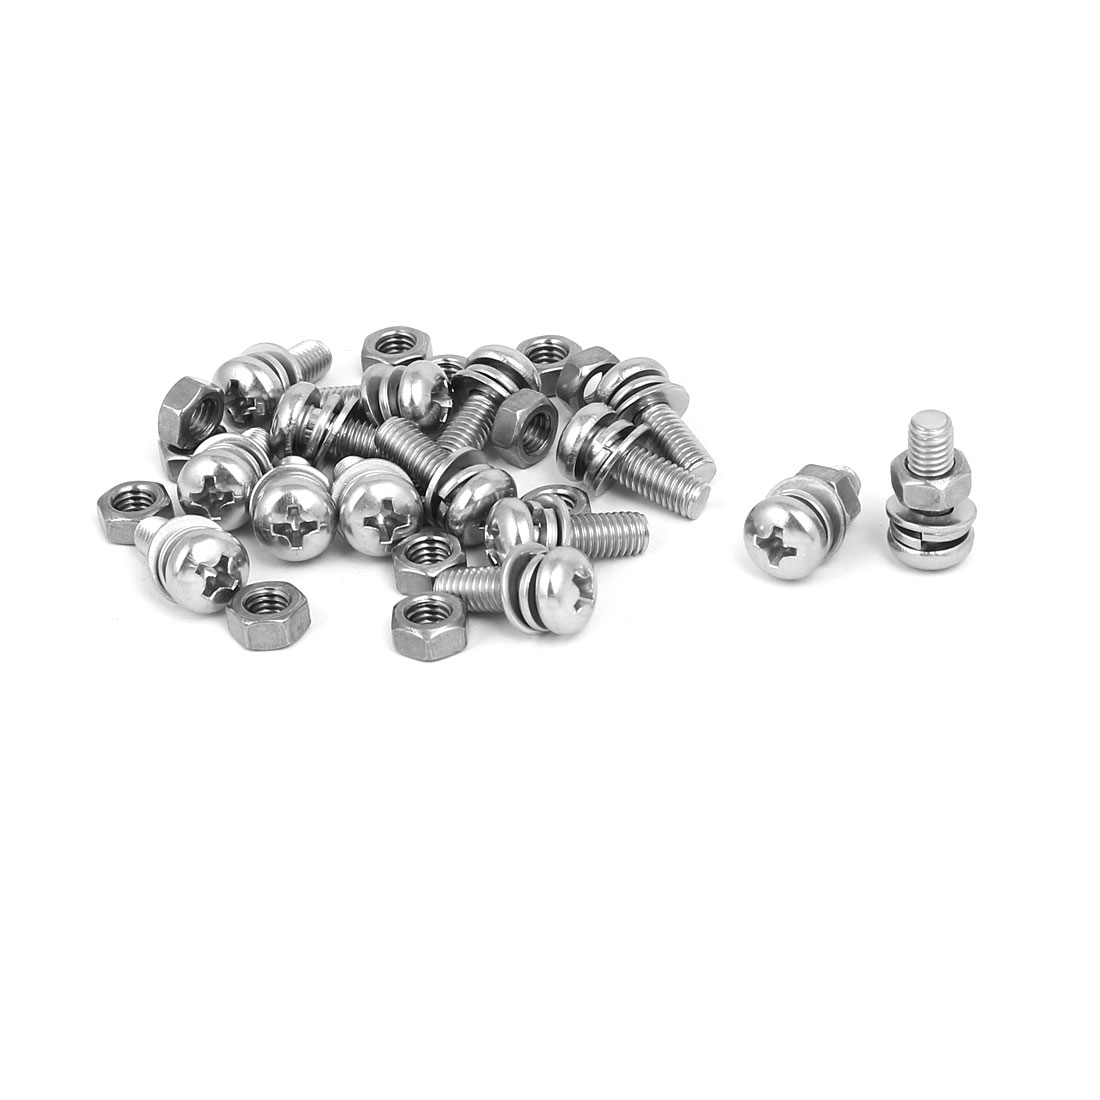 M5 x 14mm 304 Stainless Steel Phillips Pan Head Screws Nuts w Washers 15 Sets